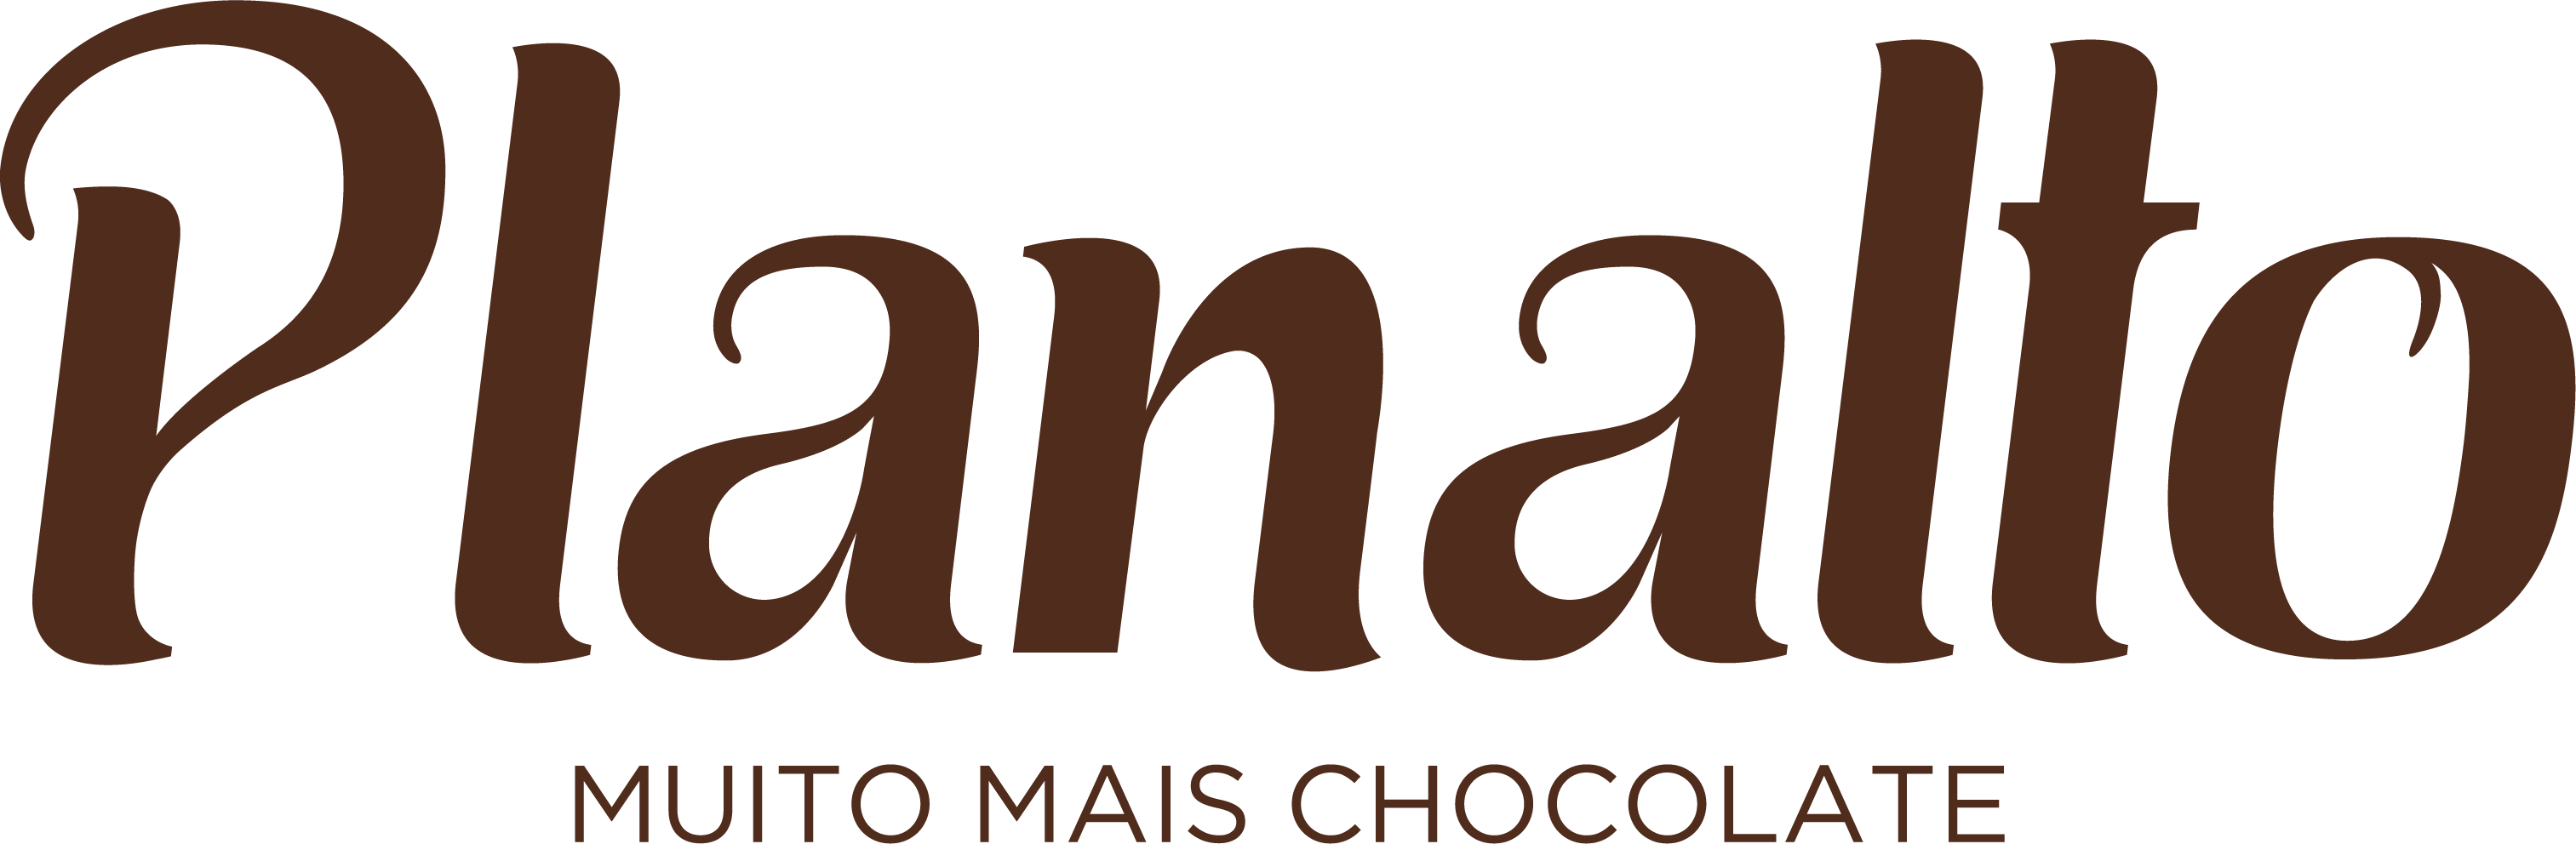 Chocolates Planalto.png